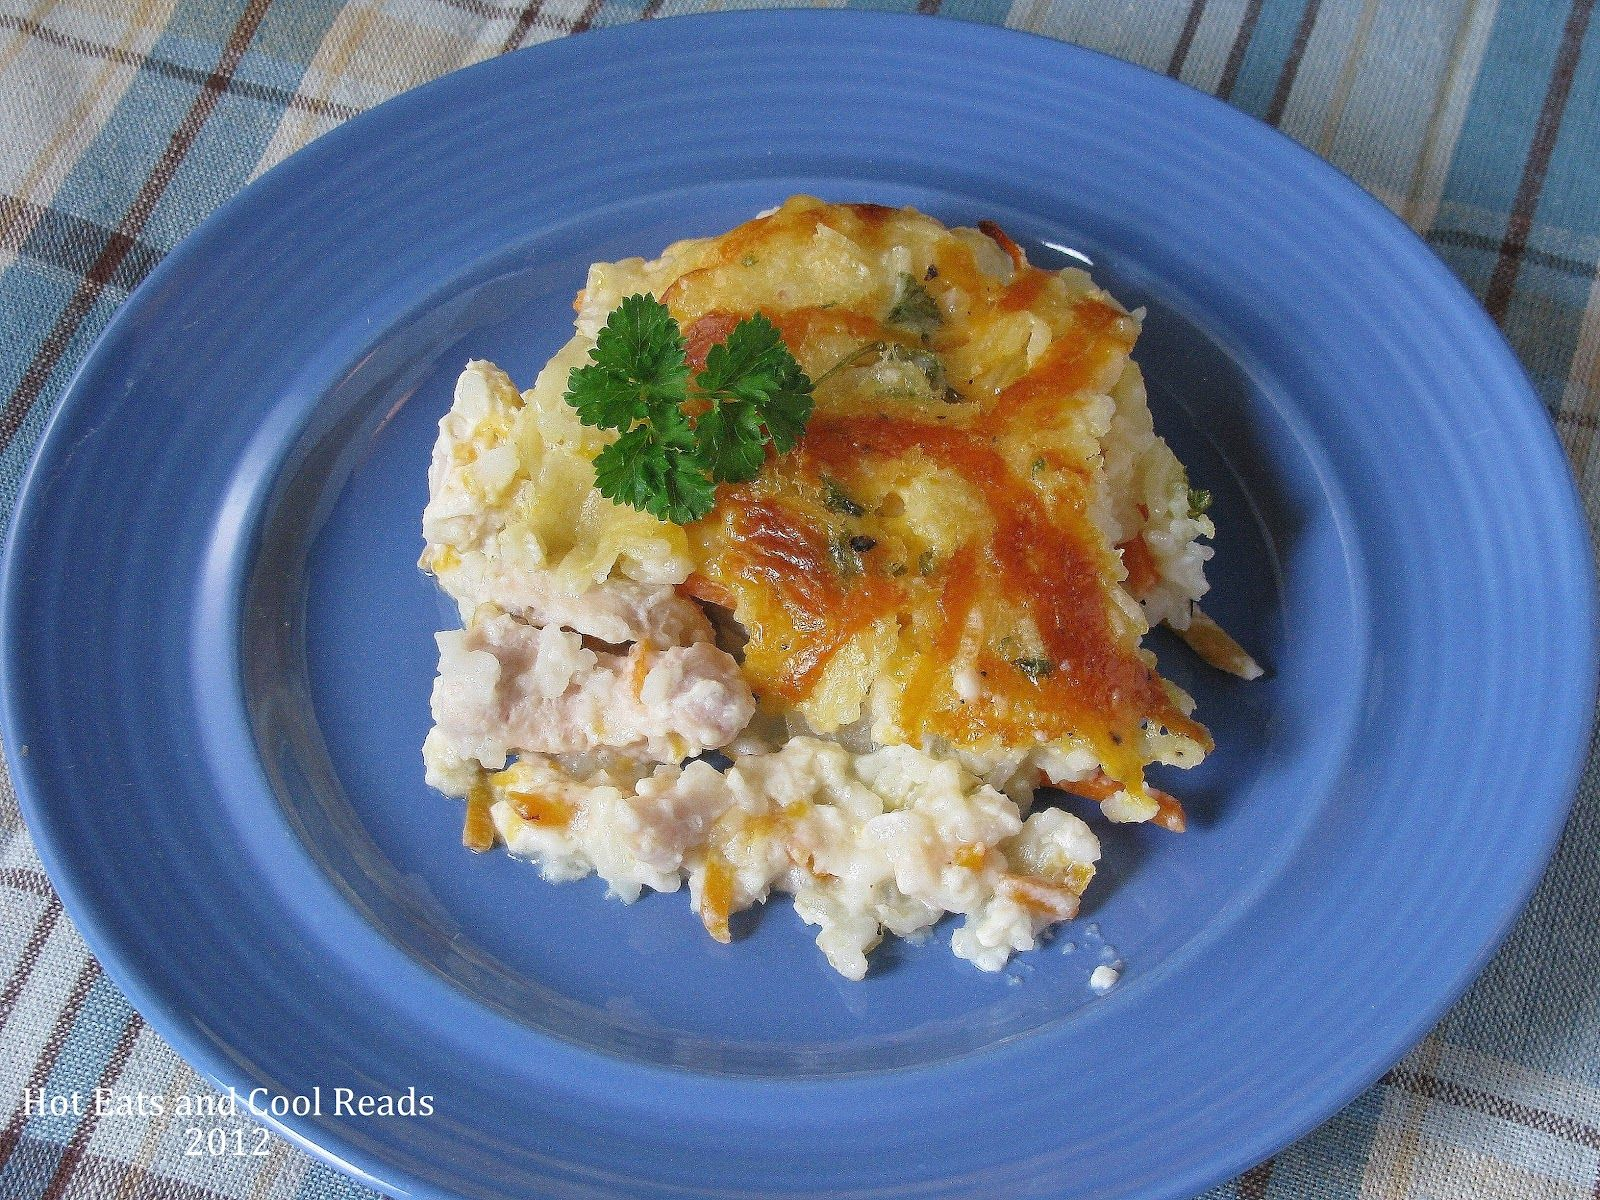 Hot Eats and Cool Reads: Chicken and Rice Casserole Recipe From Scratch (No Cream Soup!!)